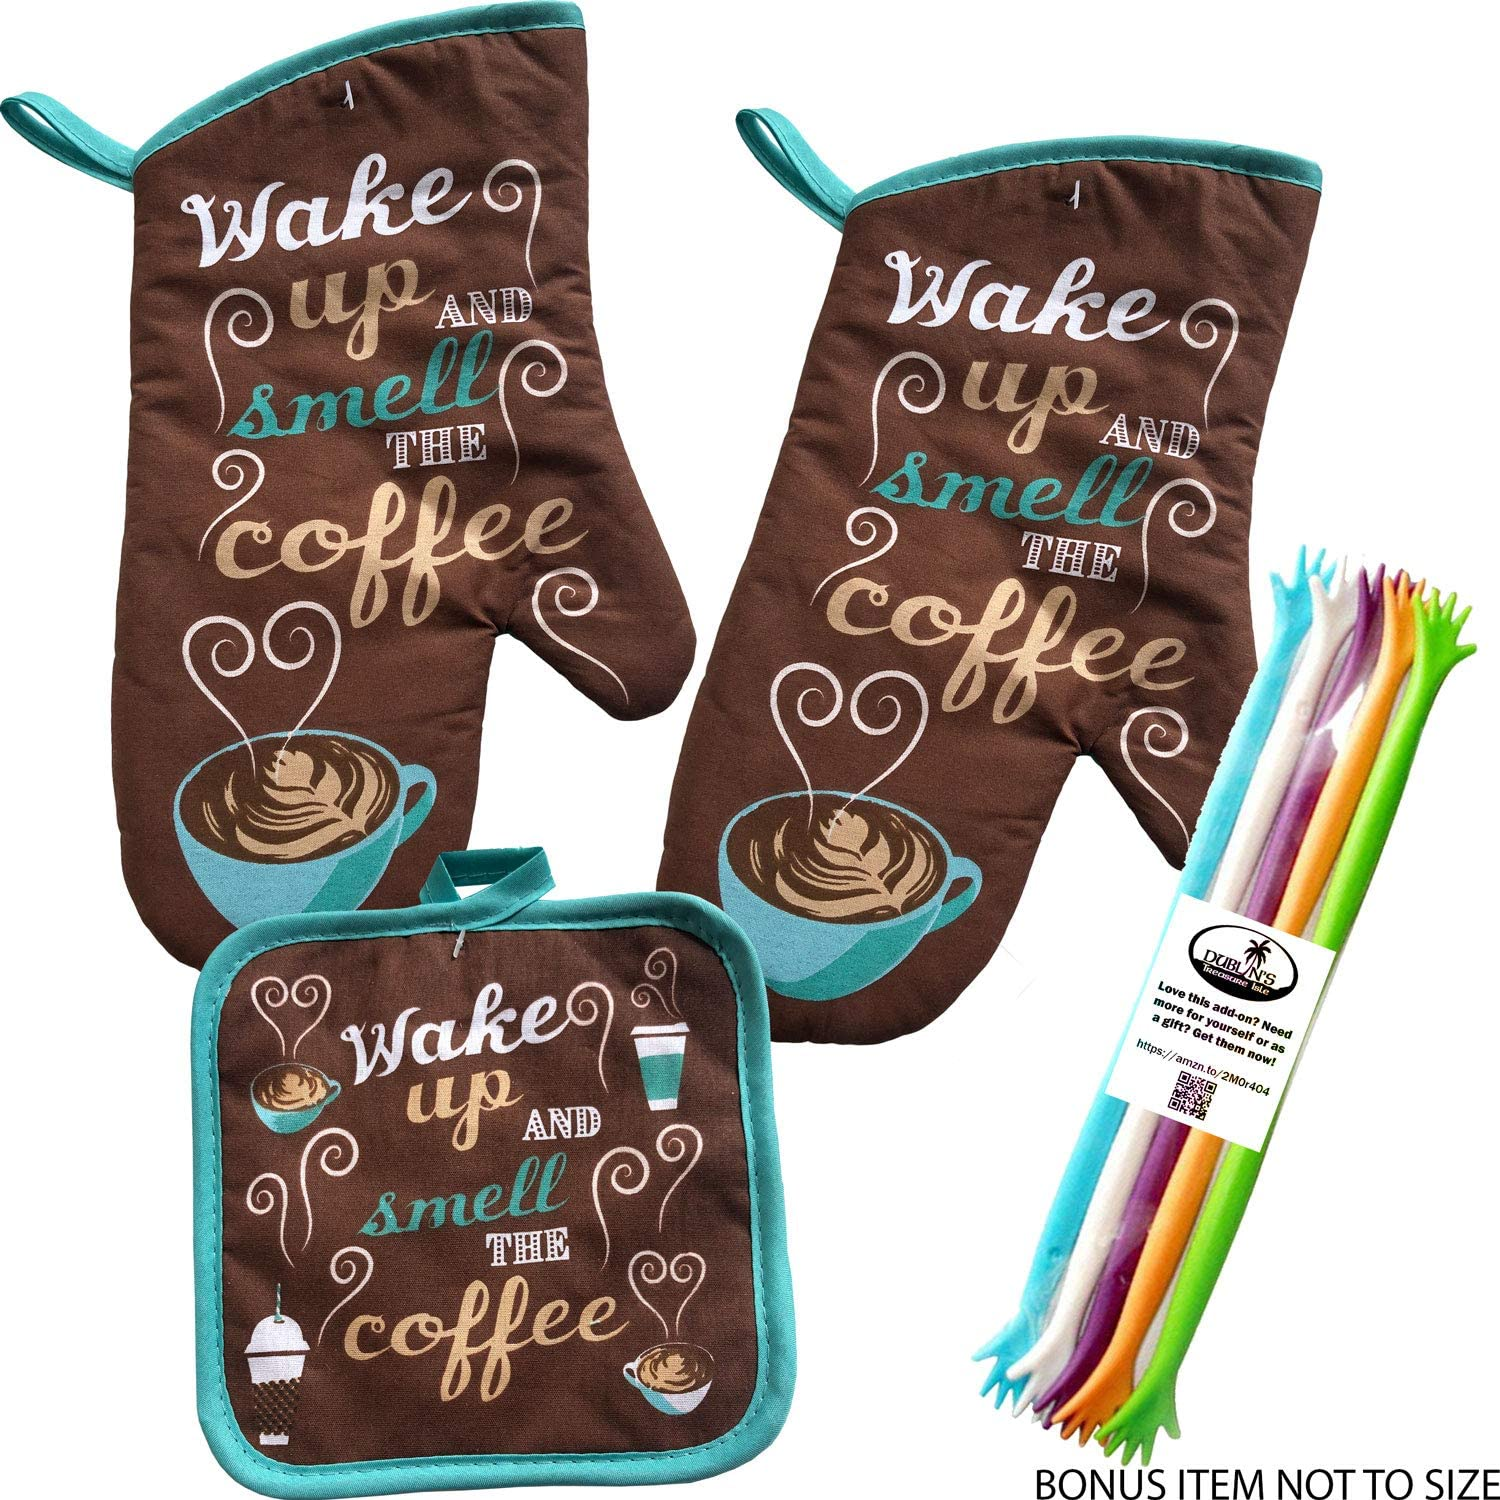 Home Collection Dublin's Treasure Isle Wake Up and Smell The Coffee Kitchen Oven Mitt Pot Holder Set Includes 2 Mitts and 2 Hot Pads (Wake Up)